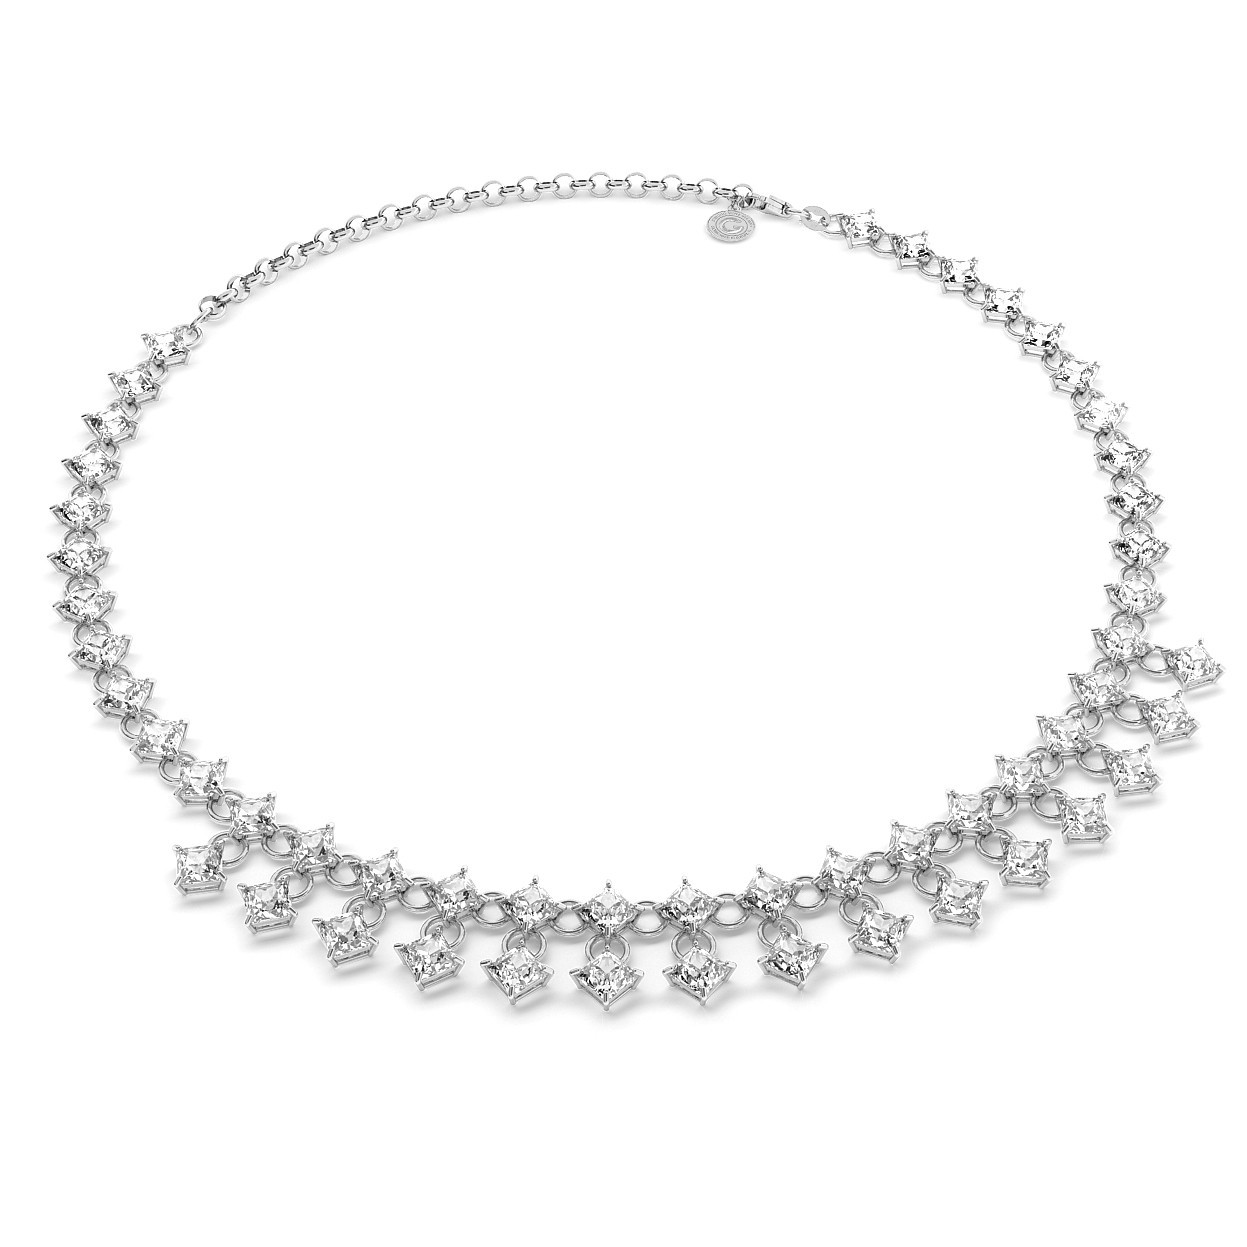 NECKLACE WITH ZIRCONS, WEDDING JEWELLERY - MODEL 2